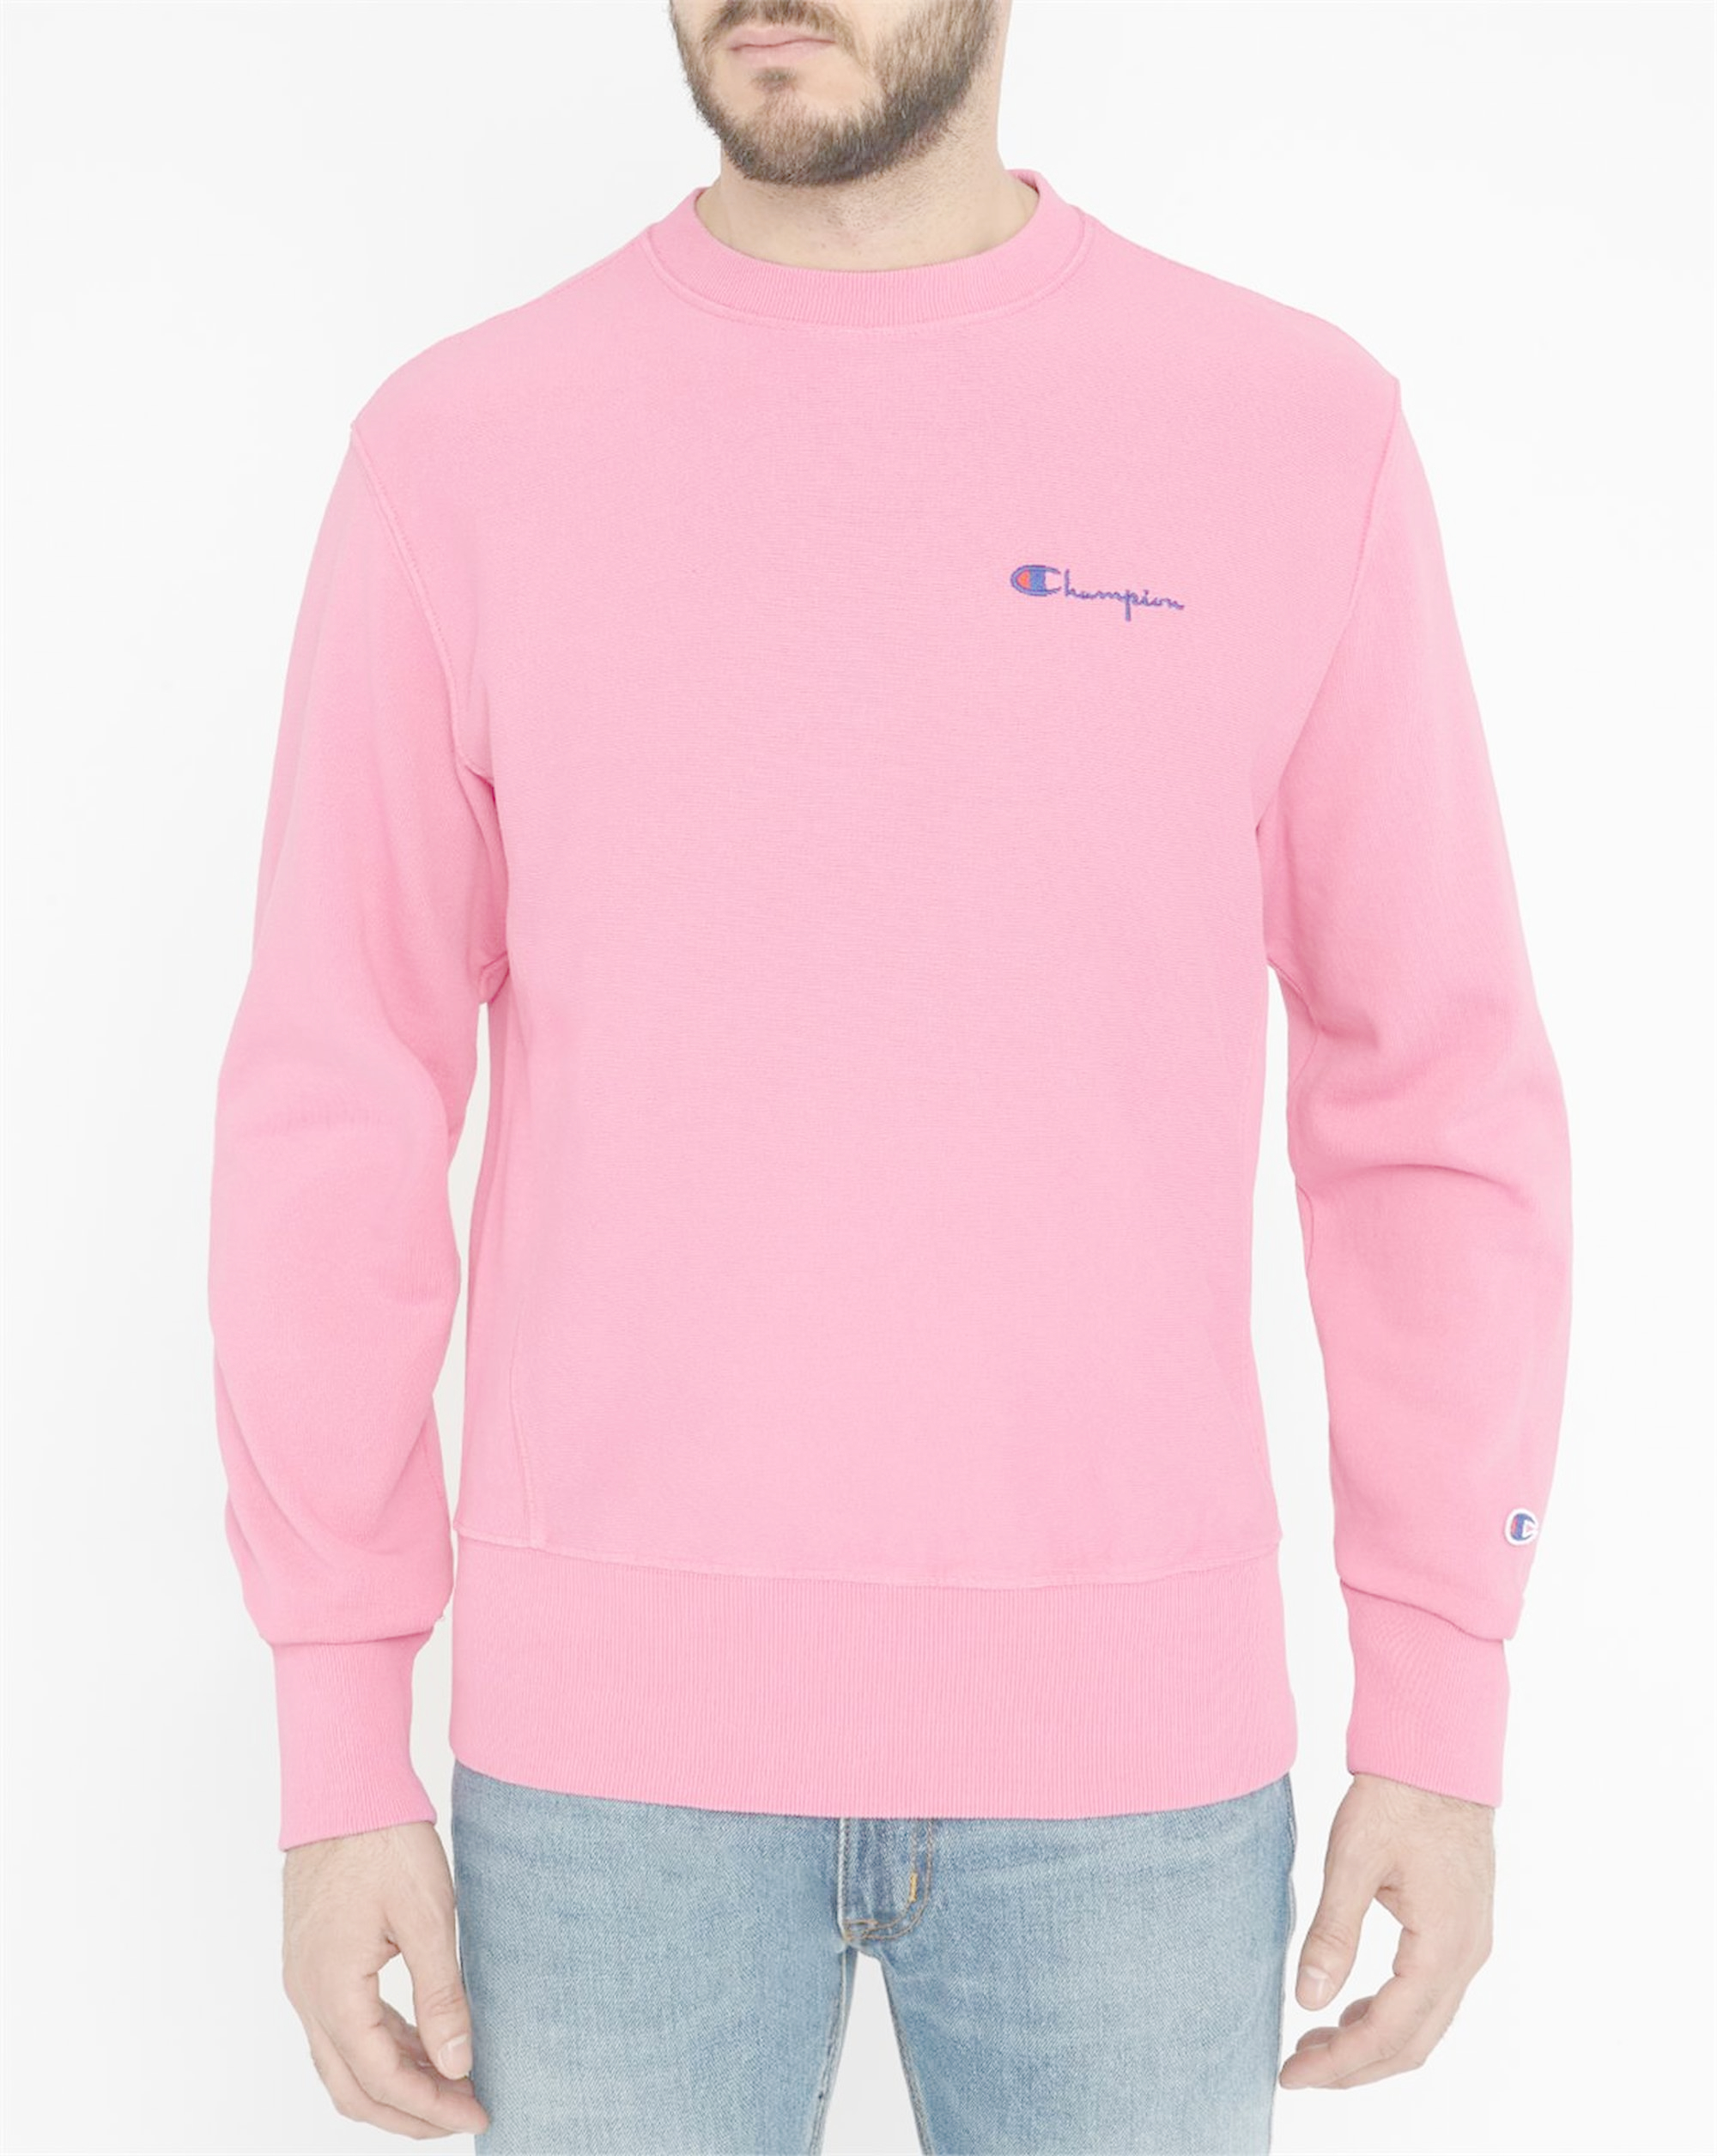 Pink Champion Sweatshirt | Fashion Ql